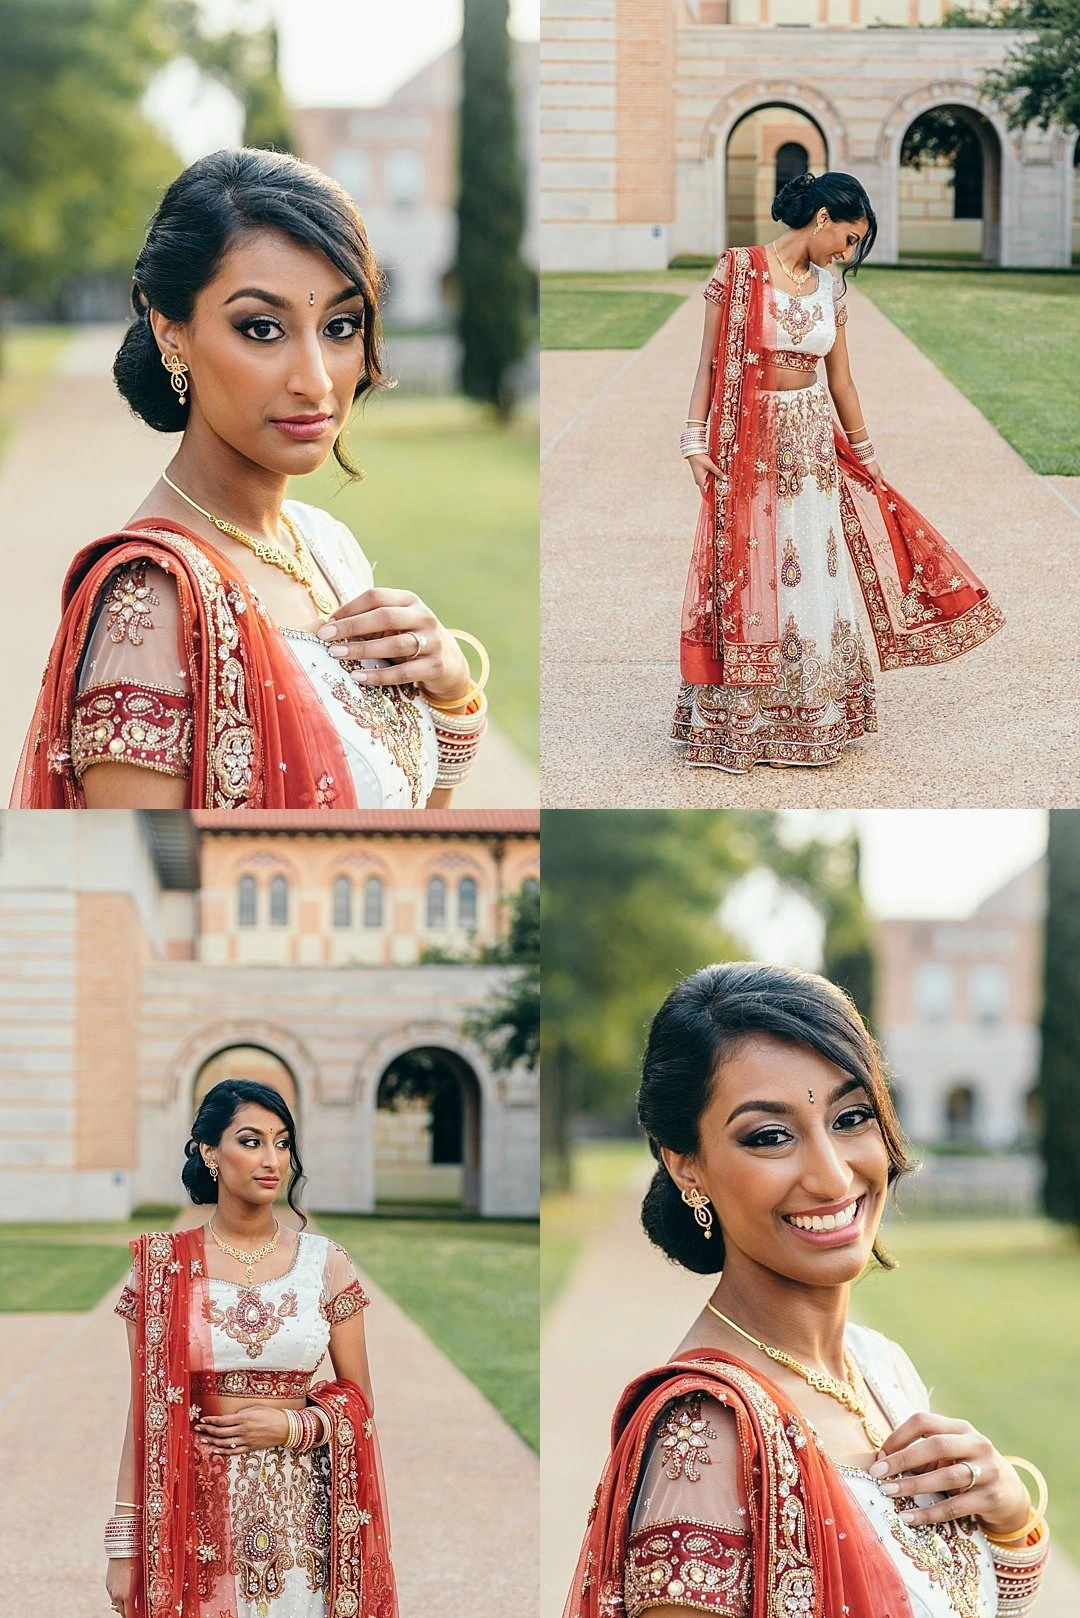 Bridal portraits in lehenga